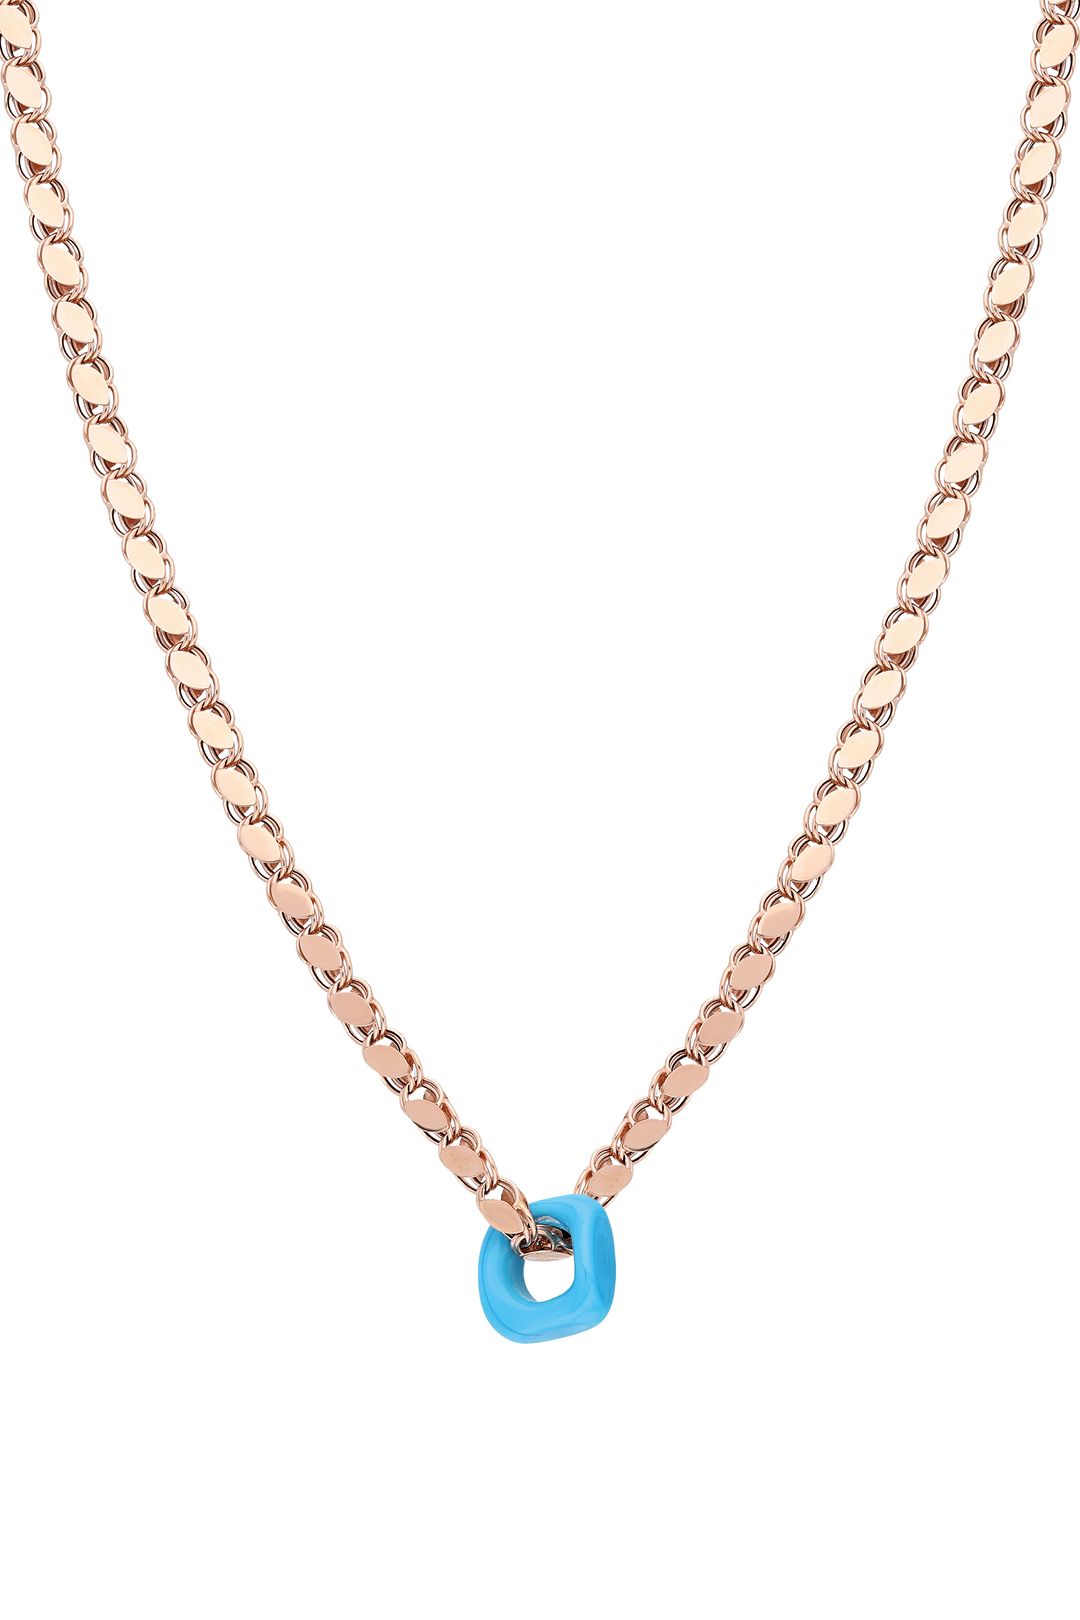 Blue Bead Flake Chain Necklace